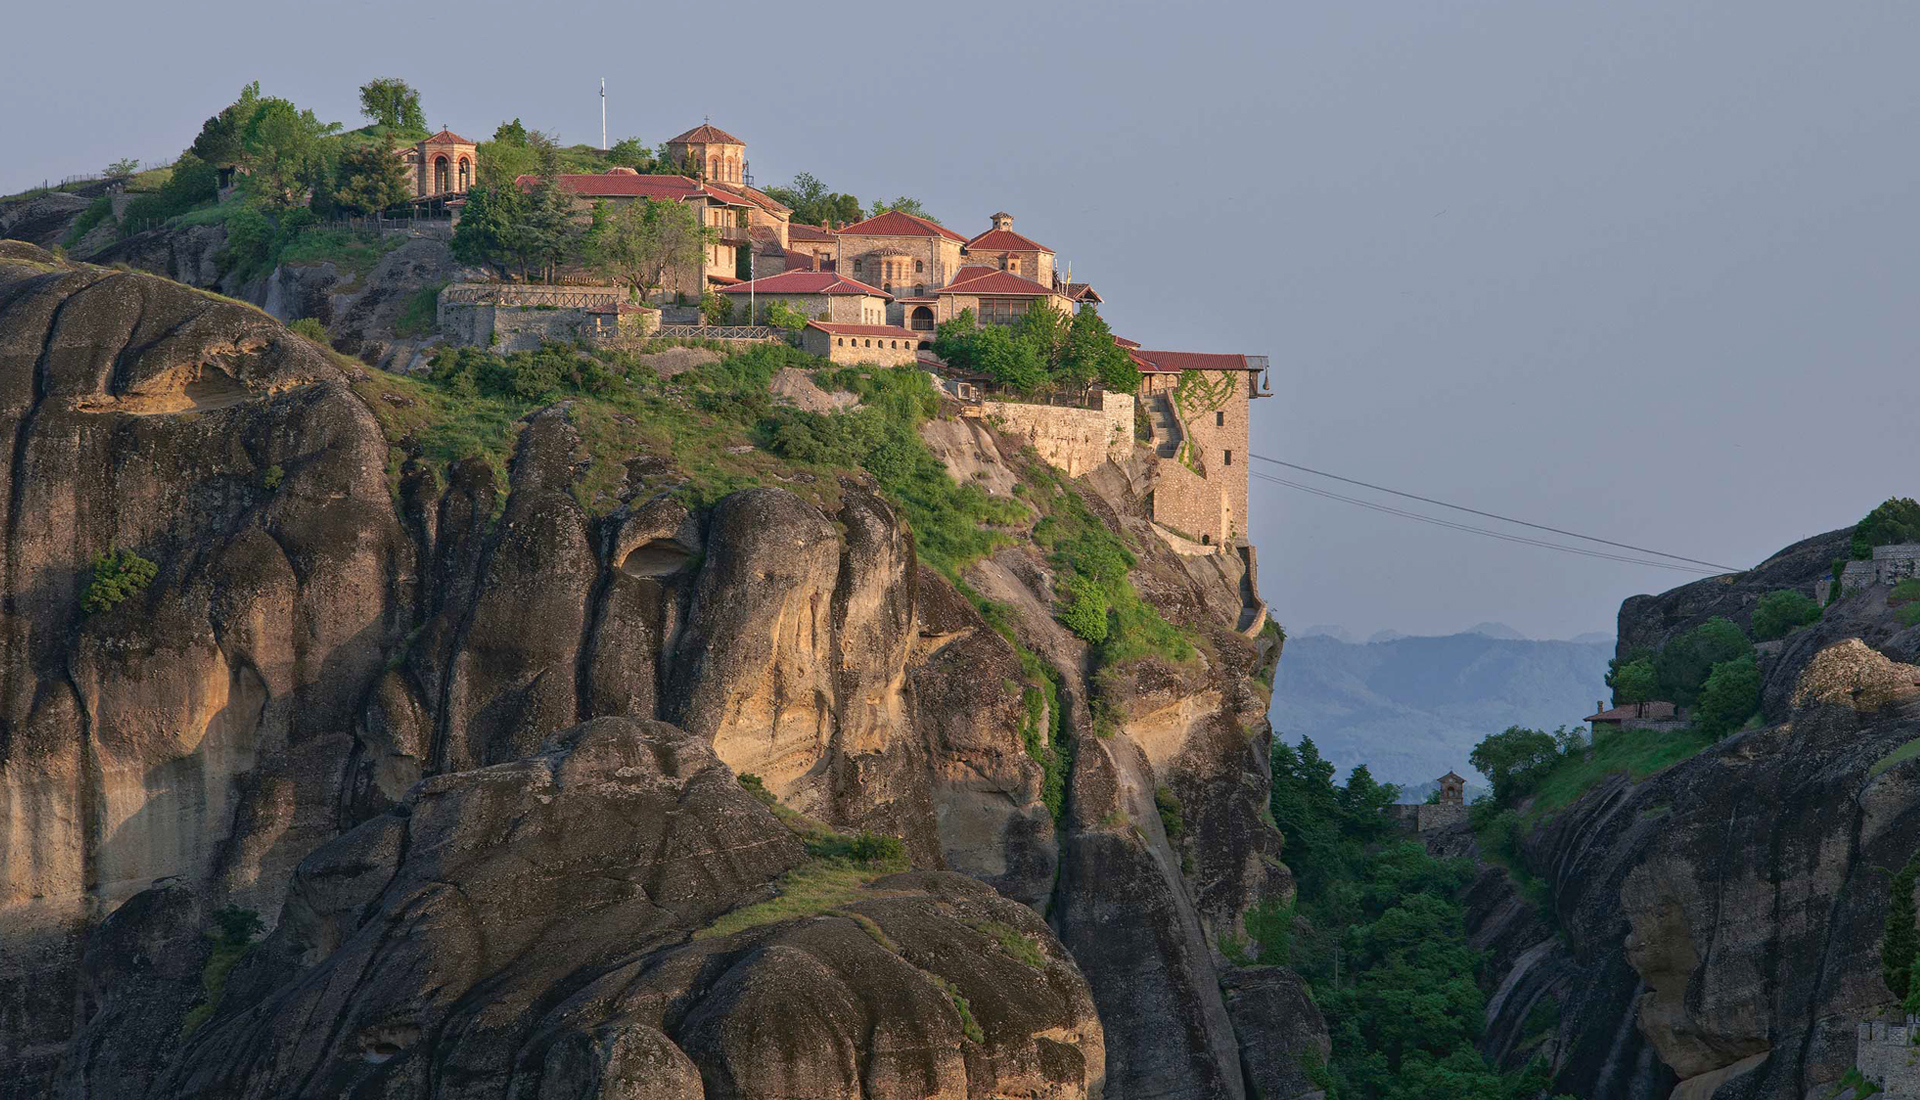 <h2>Guided tour at Meteora ...</h2>